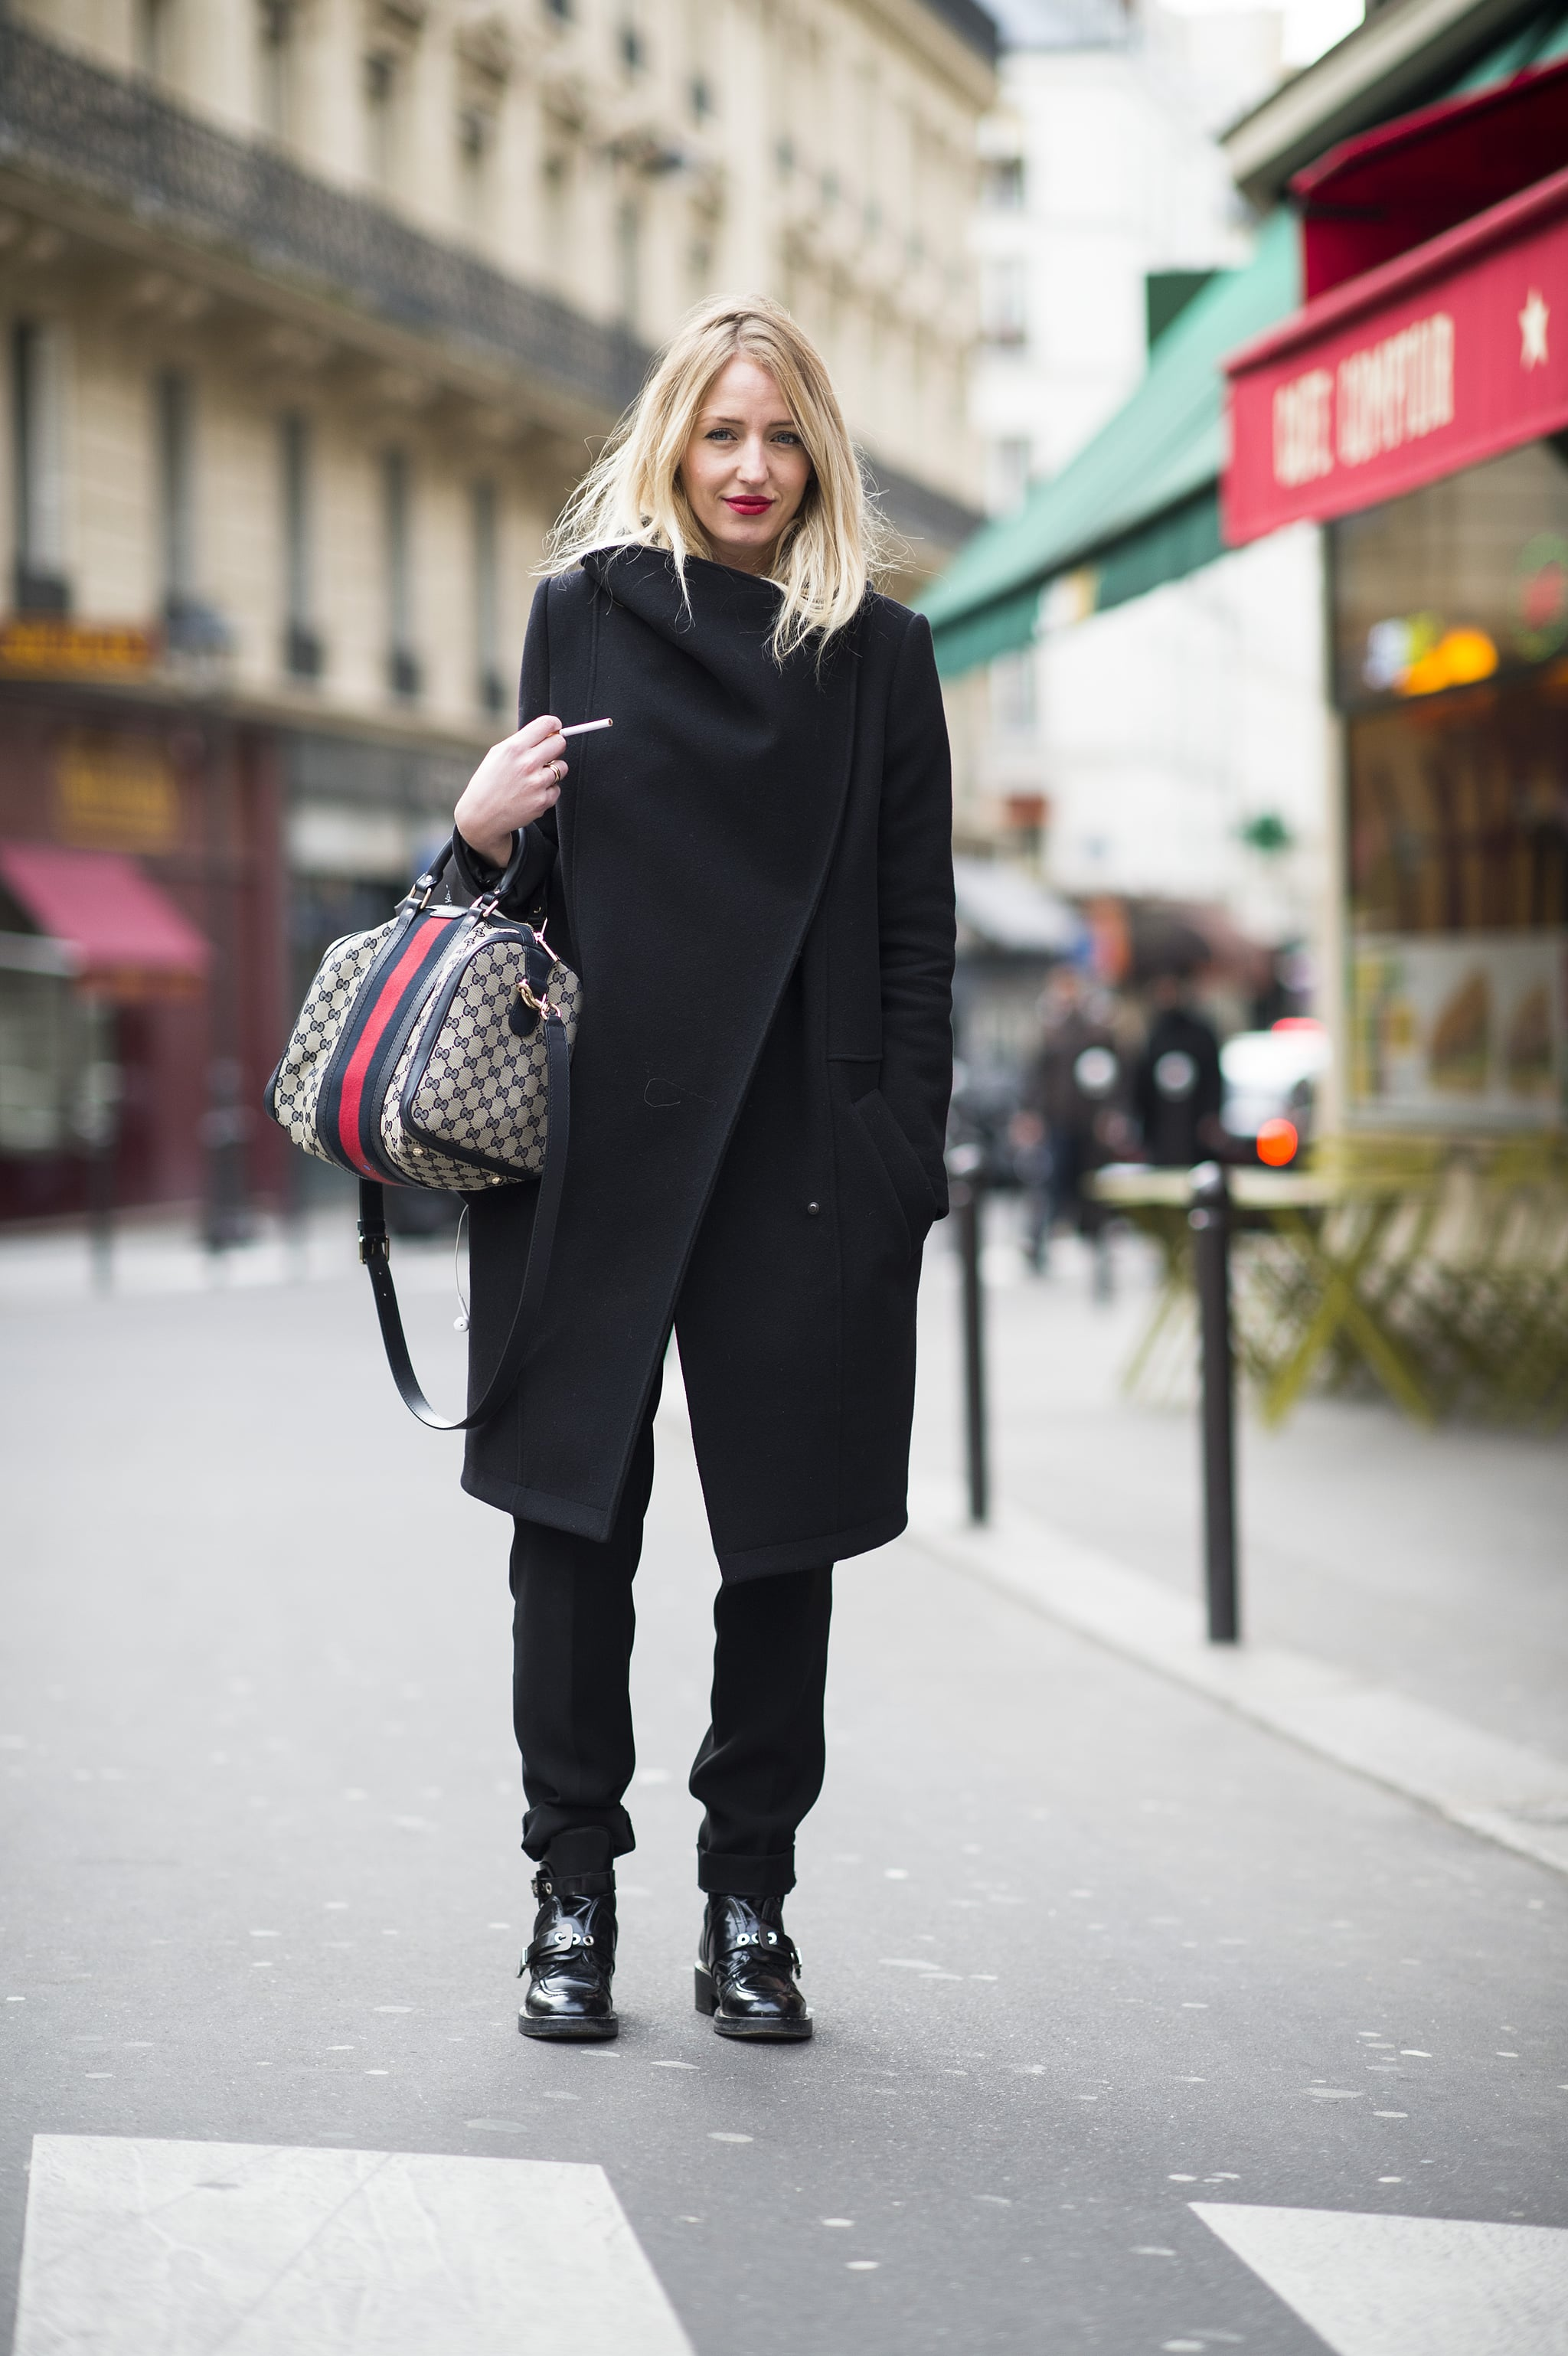 The best kind of outerwear is the kind that makes you forget what you have on underneath. Source: Le 21ème | Adam Katz Sinding